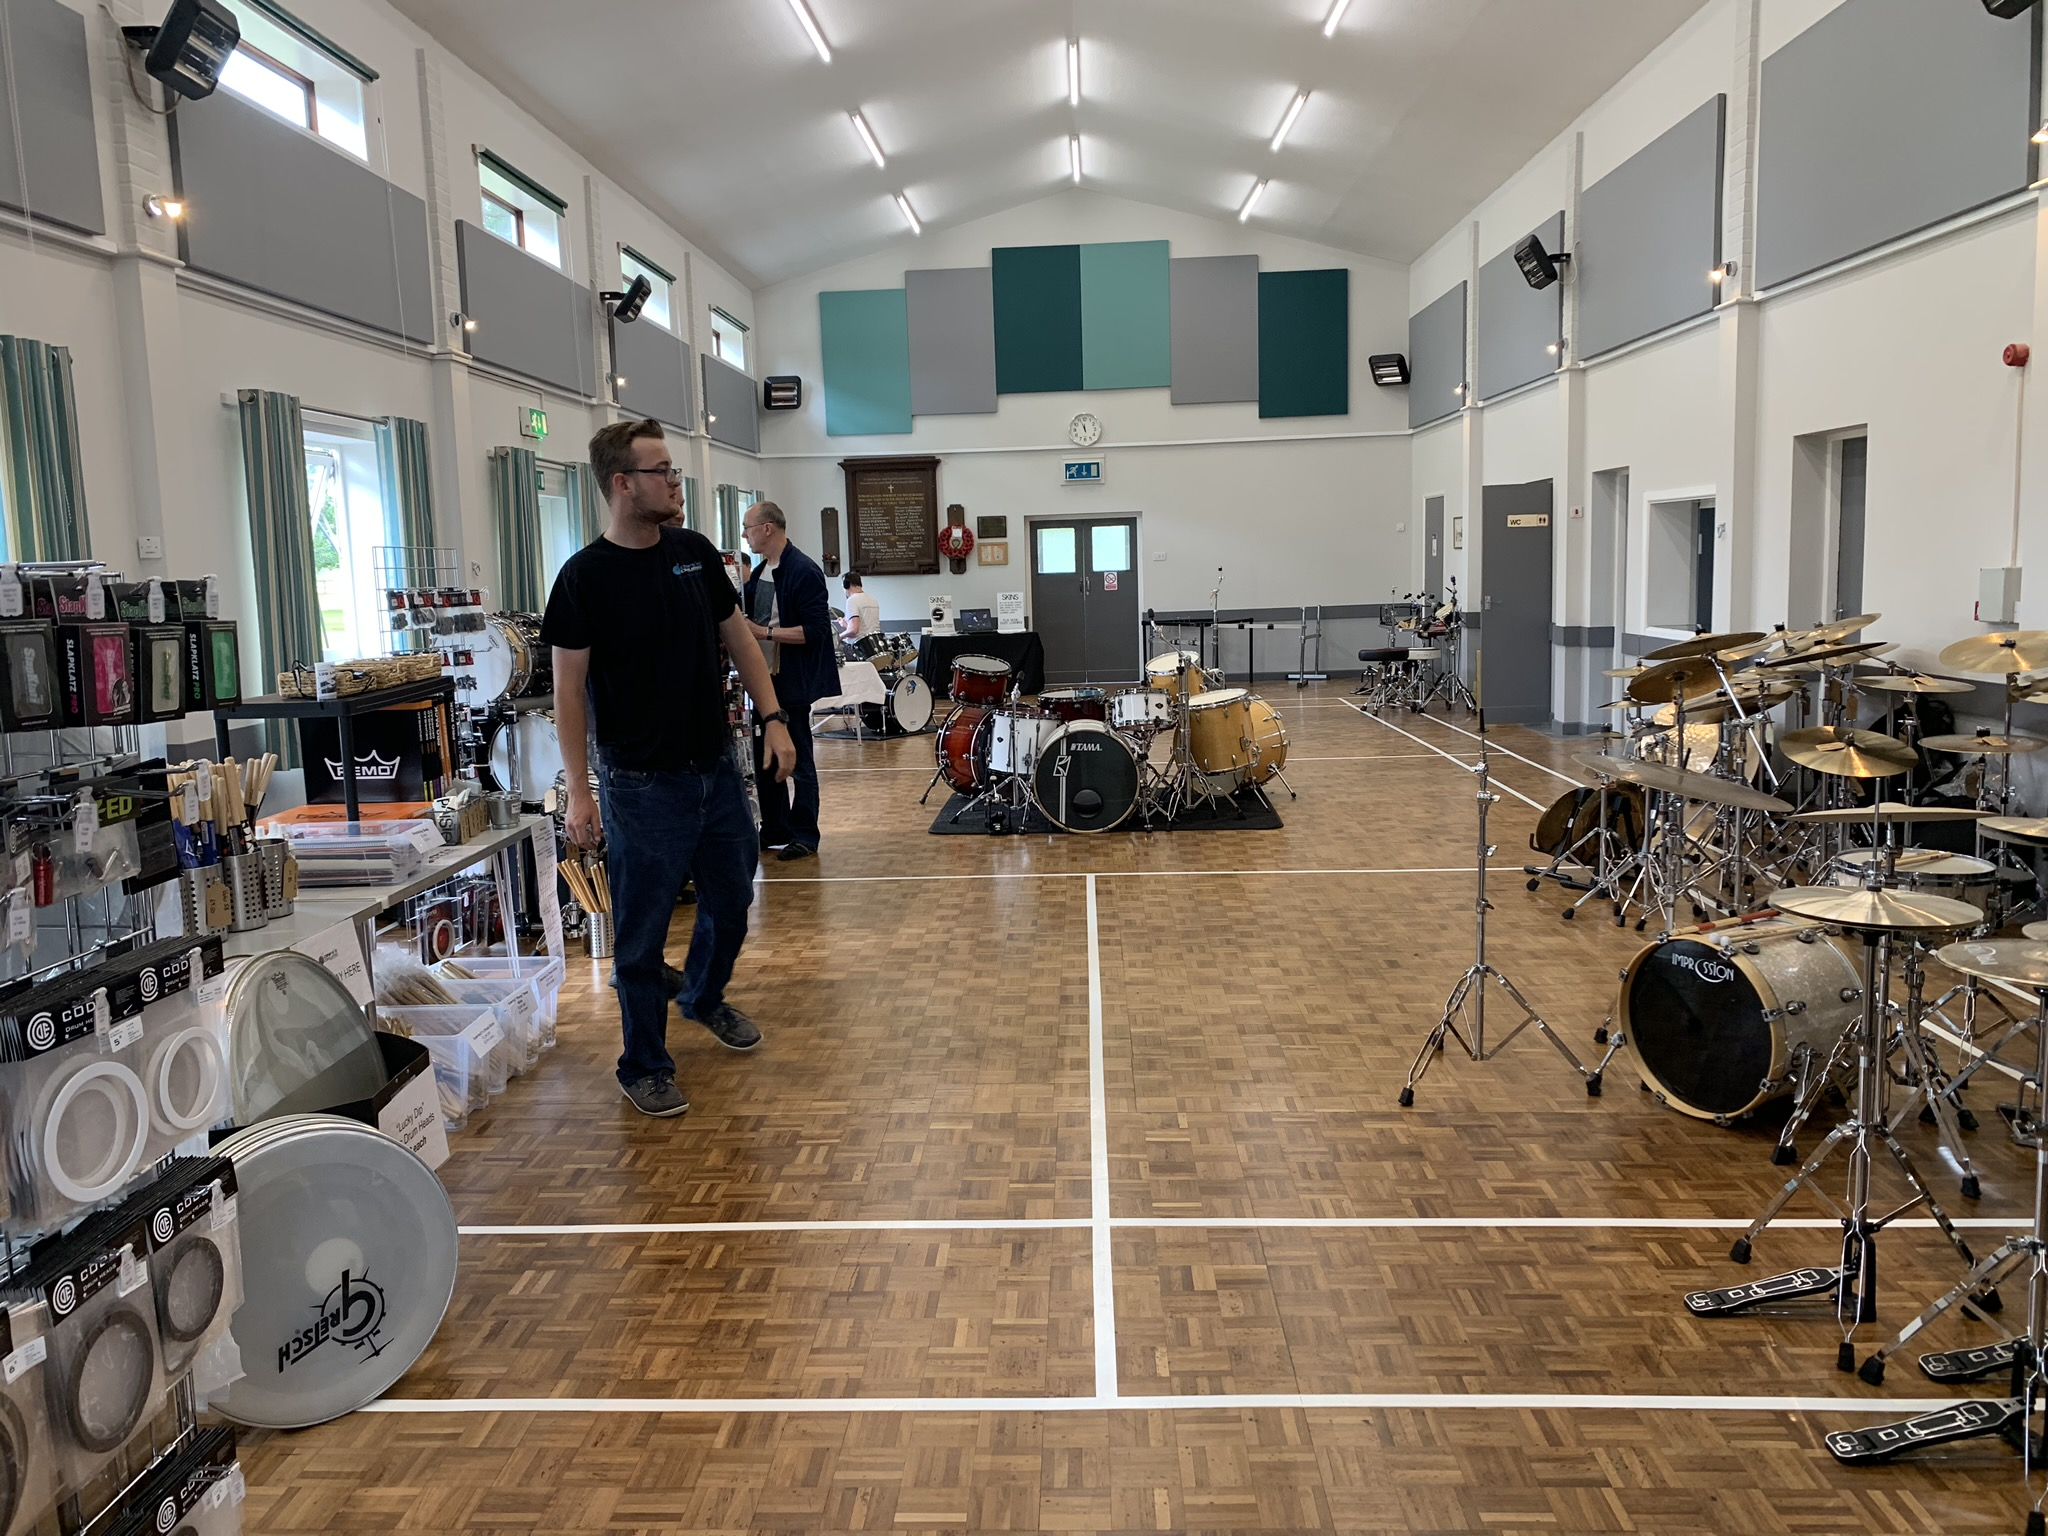 Setting up the event, August 2019